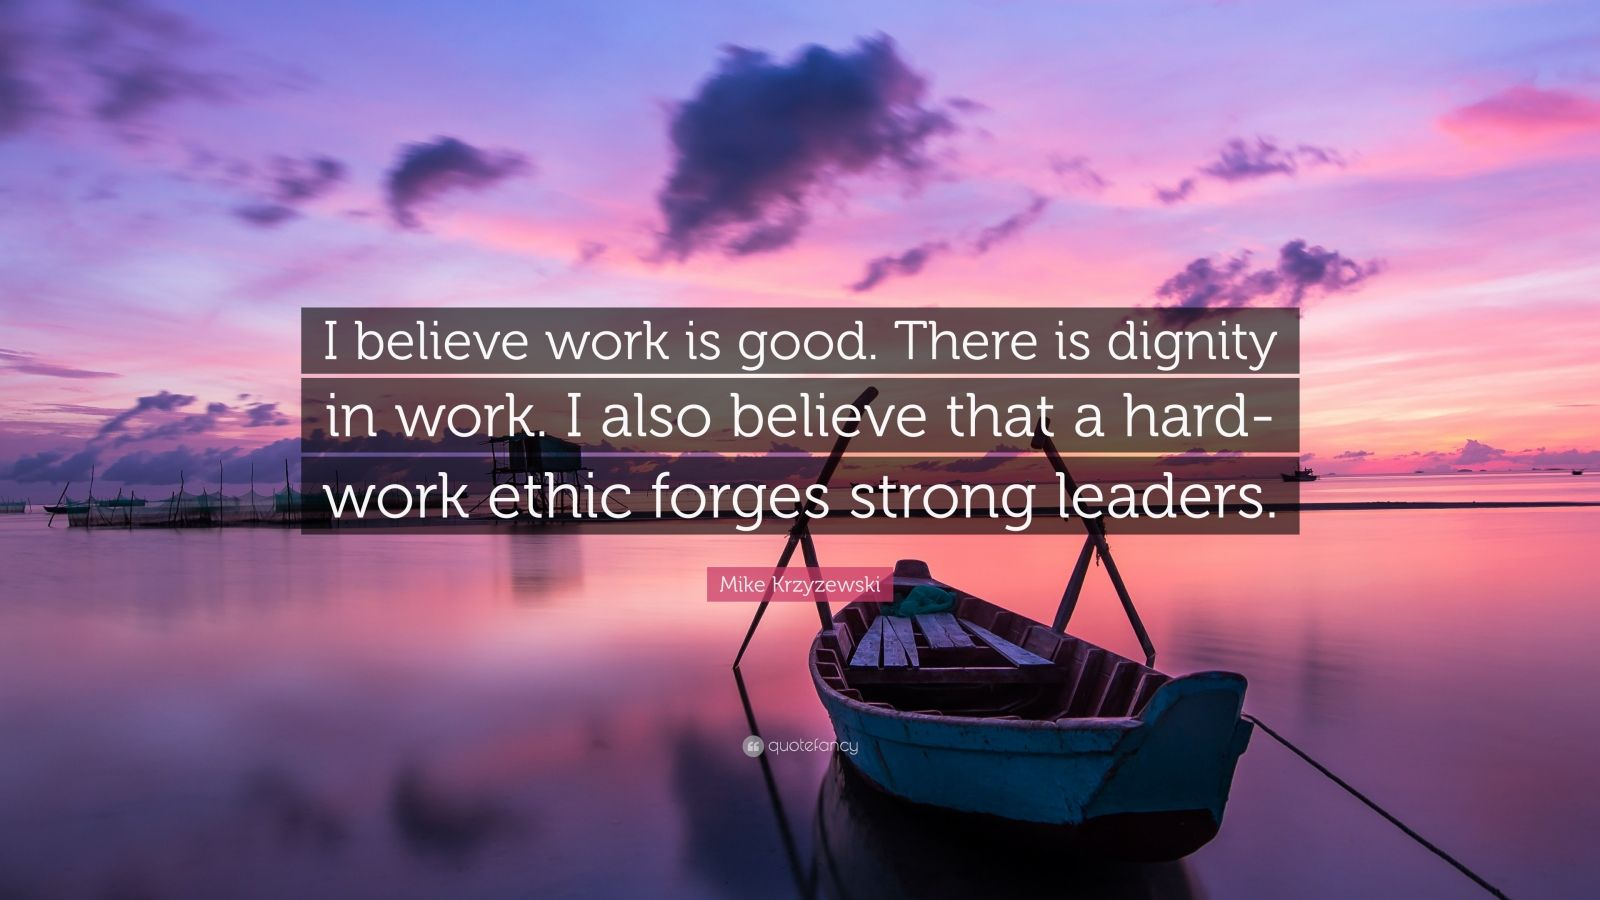 "Mike Krzyzewski Quote: ""I believe work is good. There is dignity in work. I also believe that a hard-work ethic forges strong leaders."""